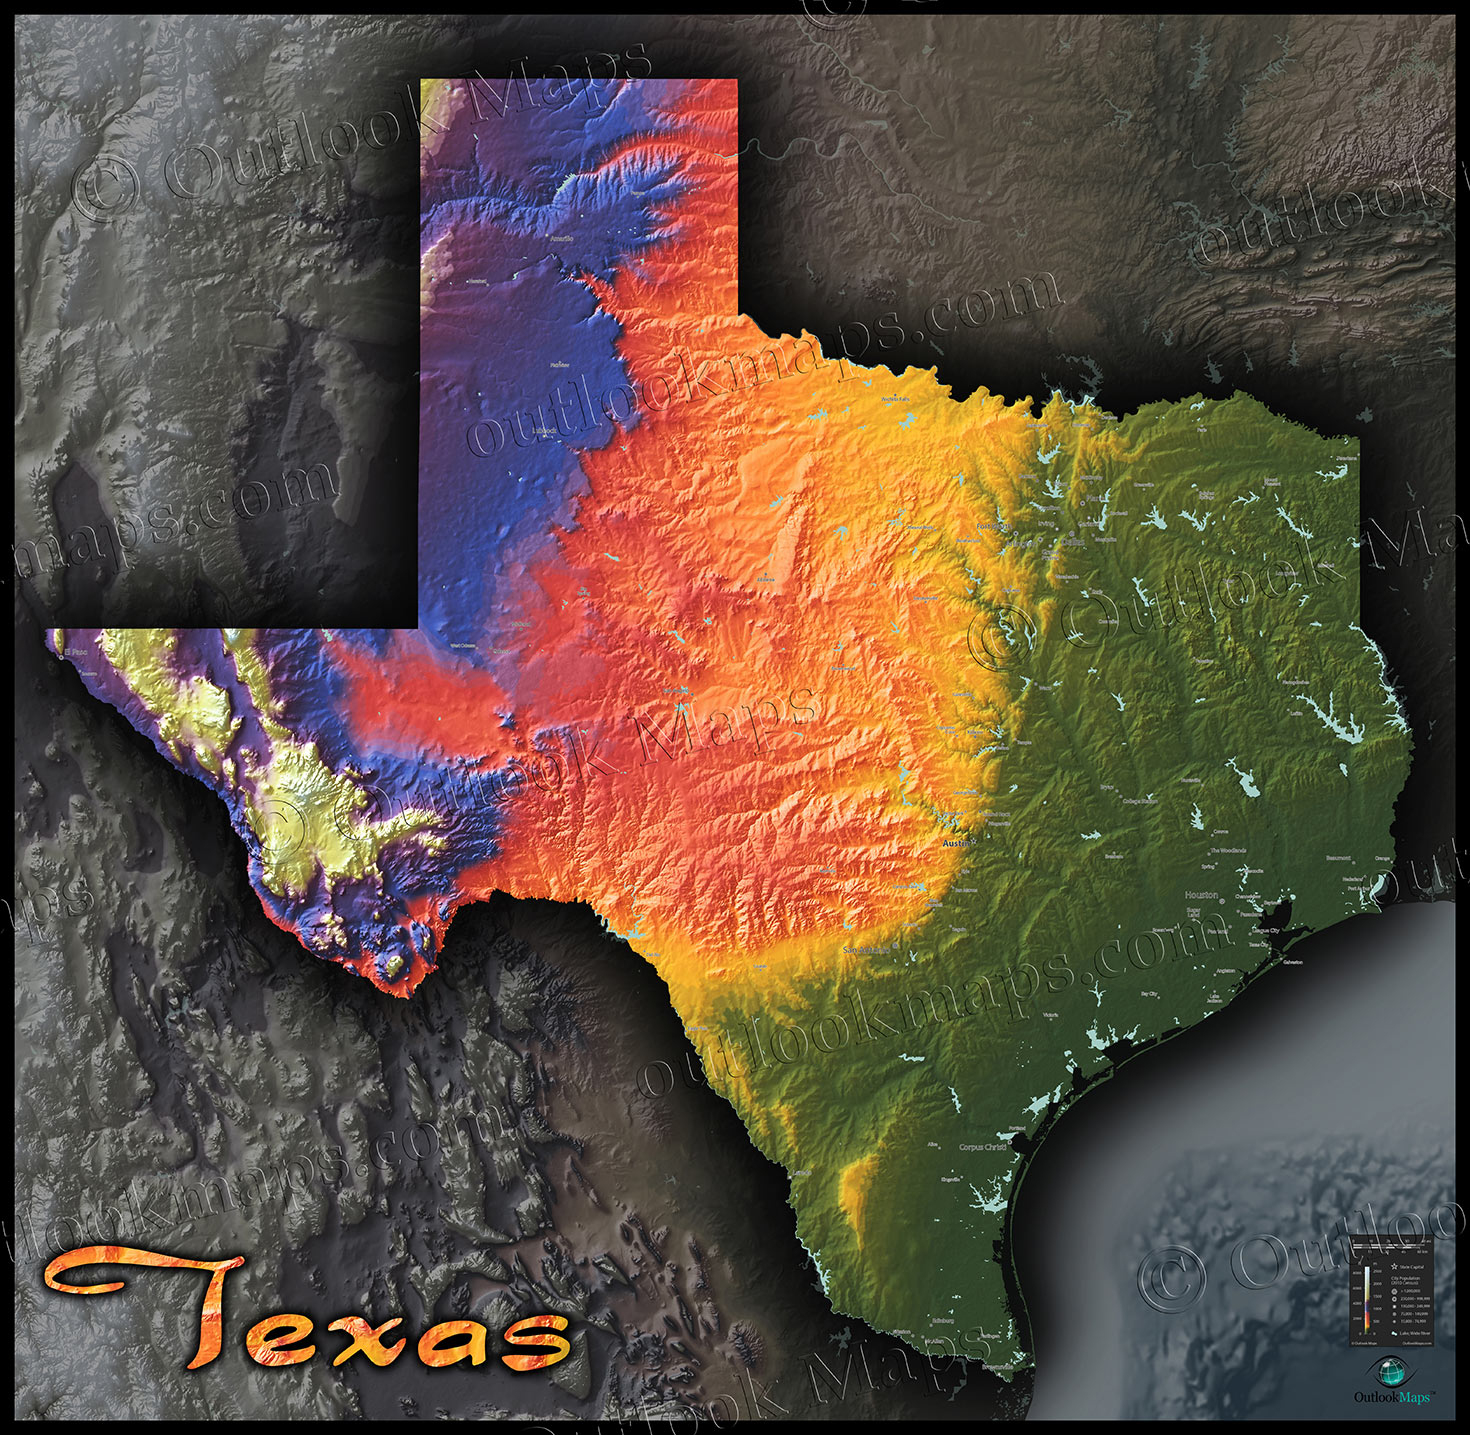 Physical Texas Map   State Topography In Colorful 3D Style - 3D Topographic Map Of Texas